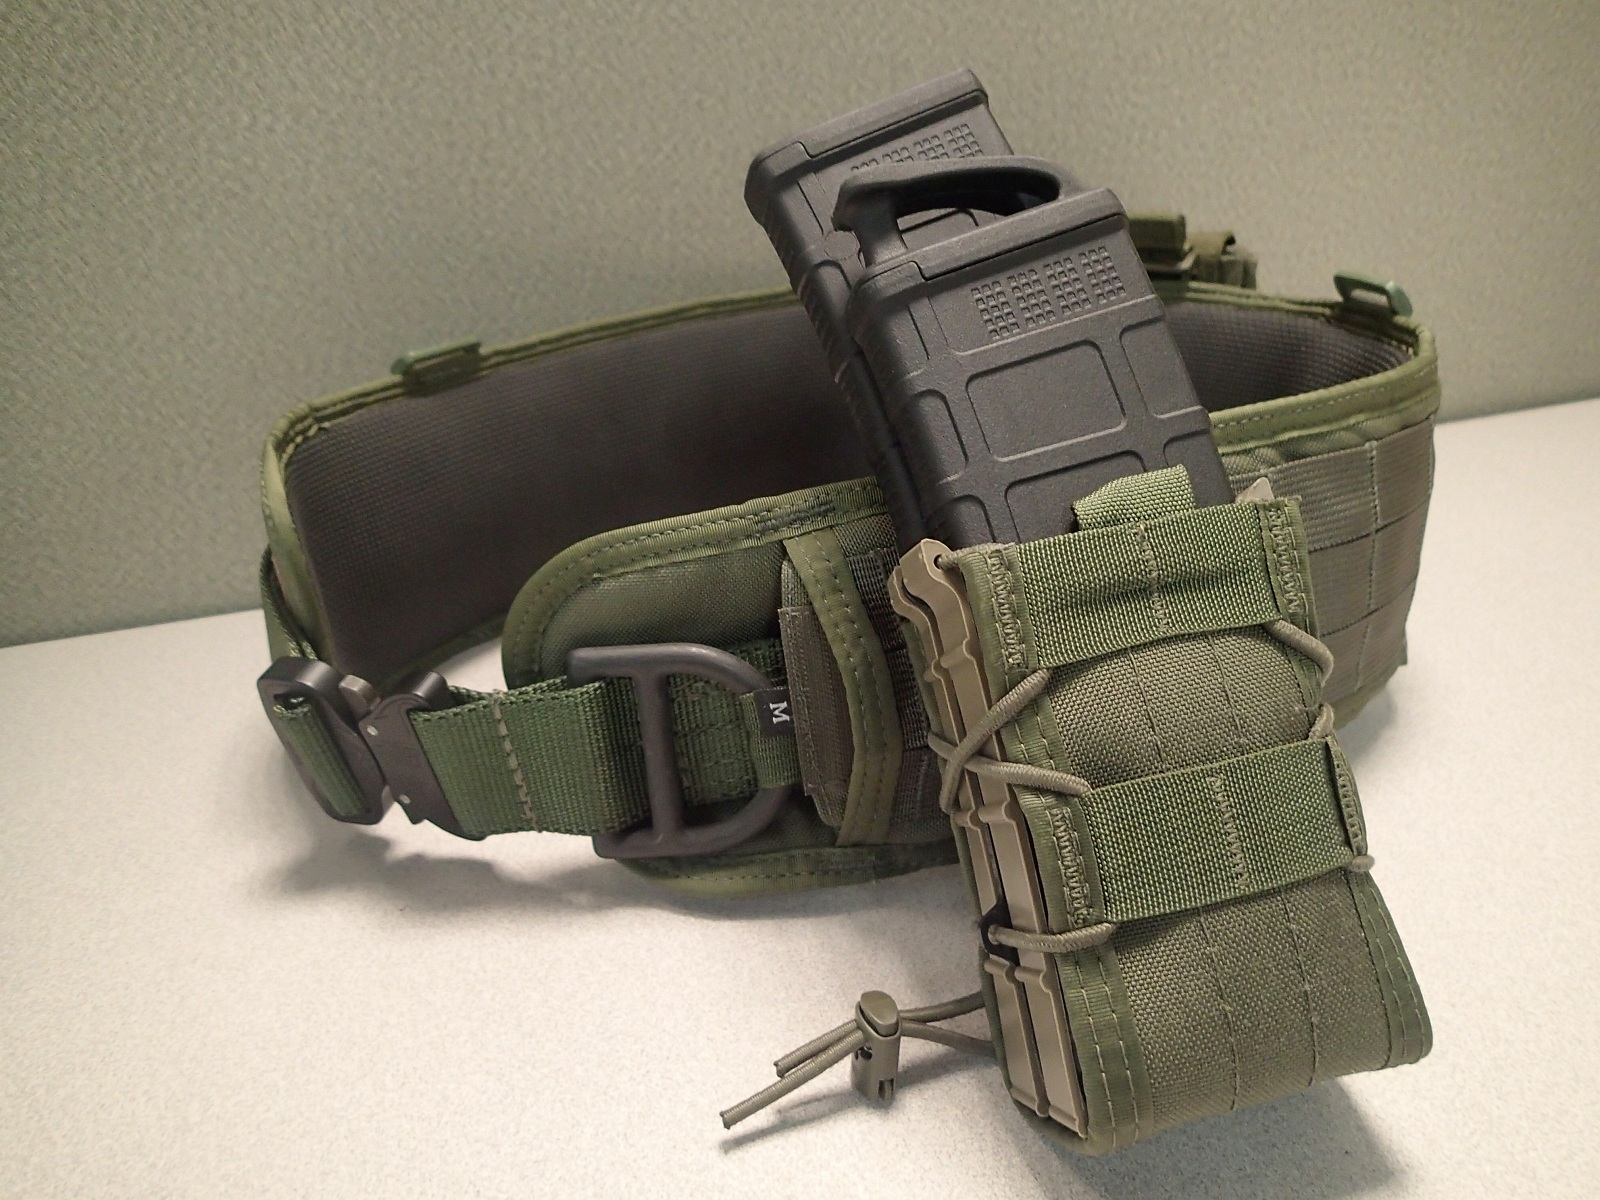 Gear and Accessories for Modern Sporting Rifles